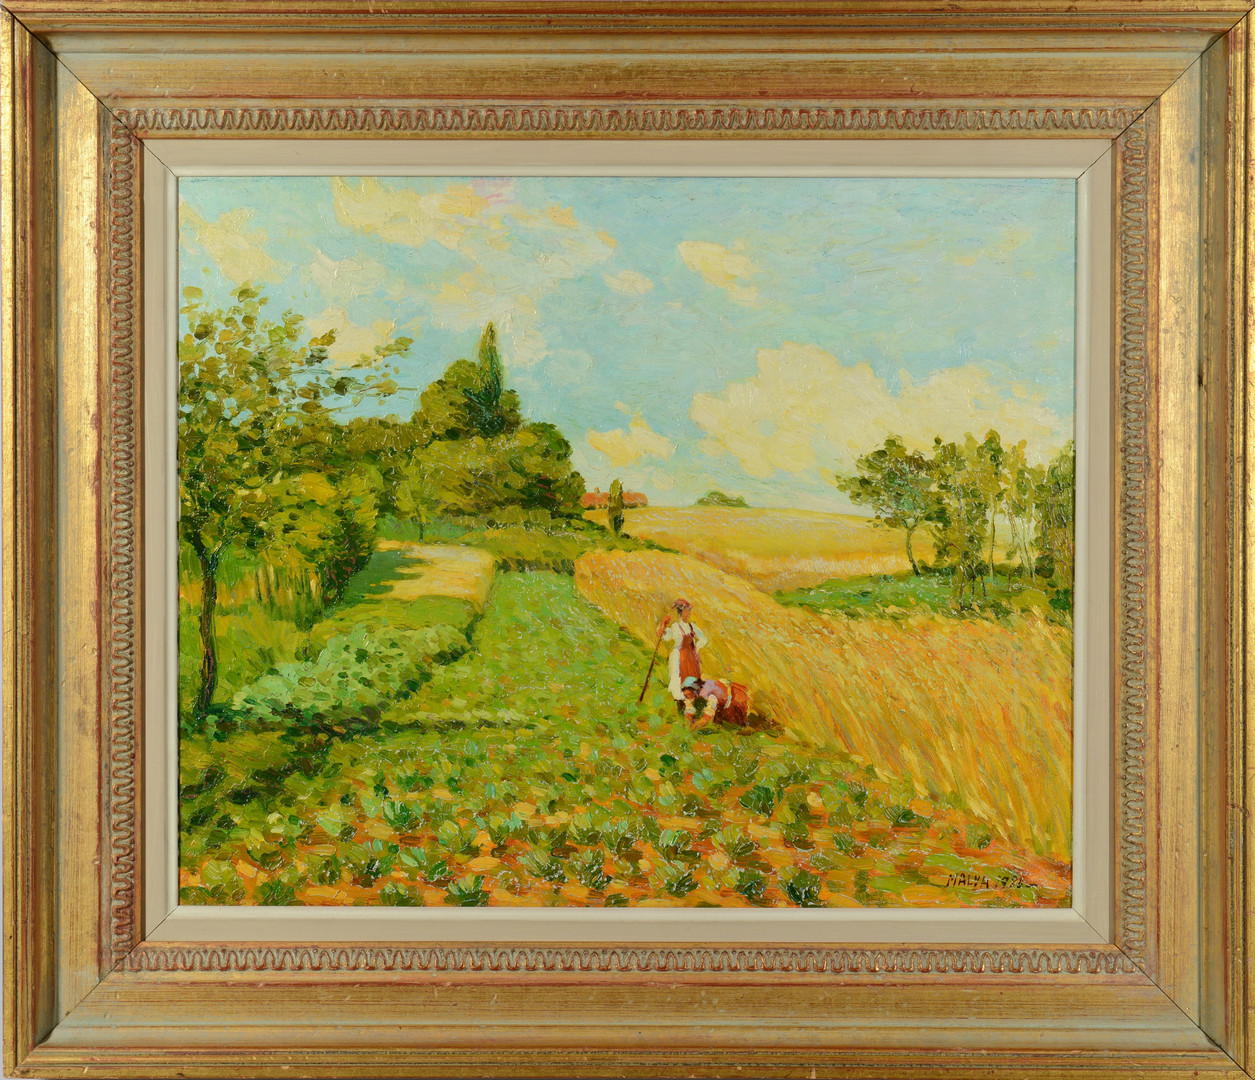 Lot 225: Malva oil on canvas landscape